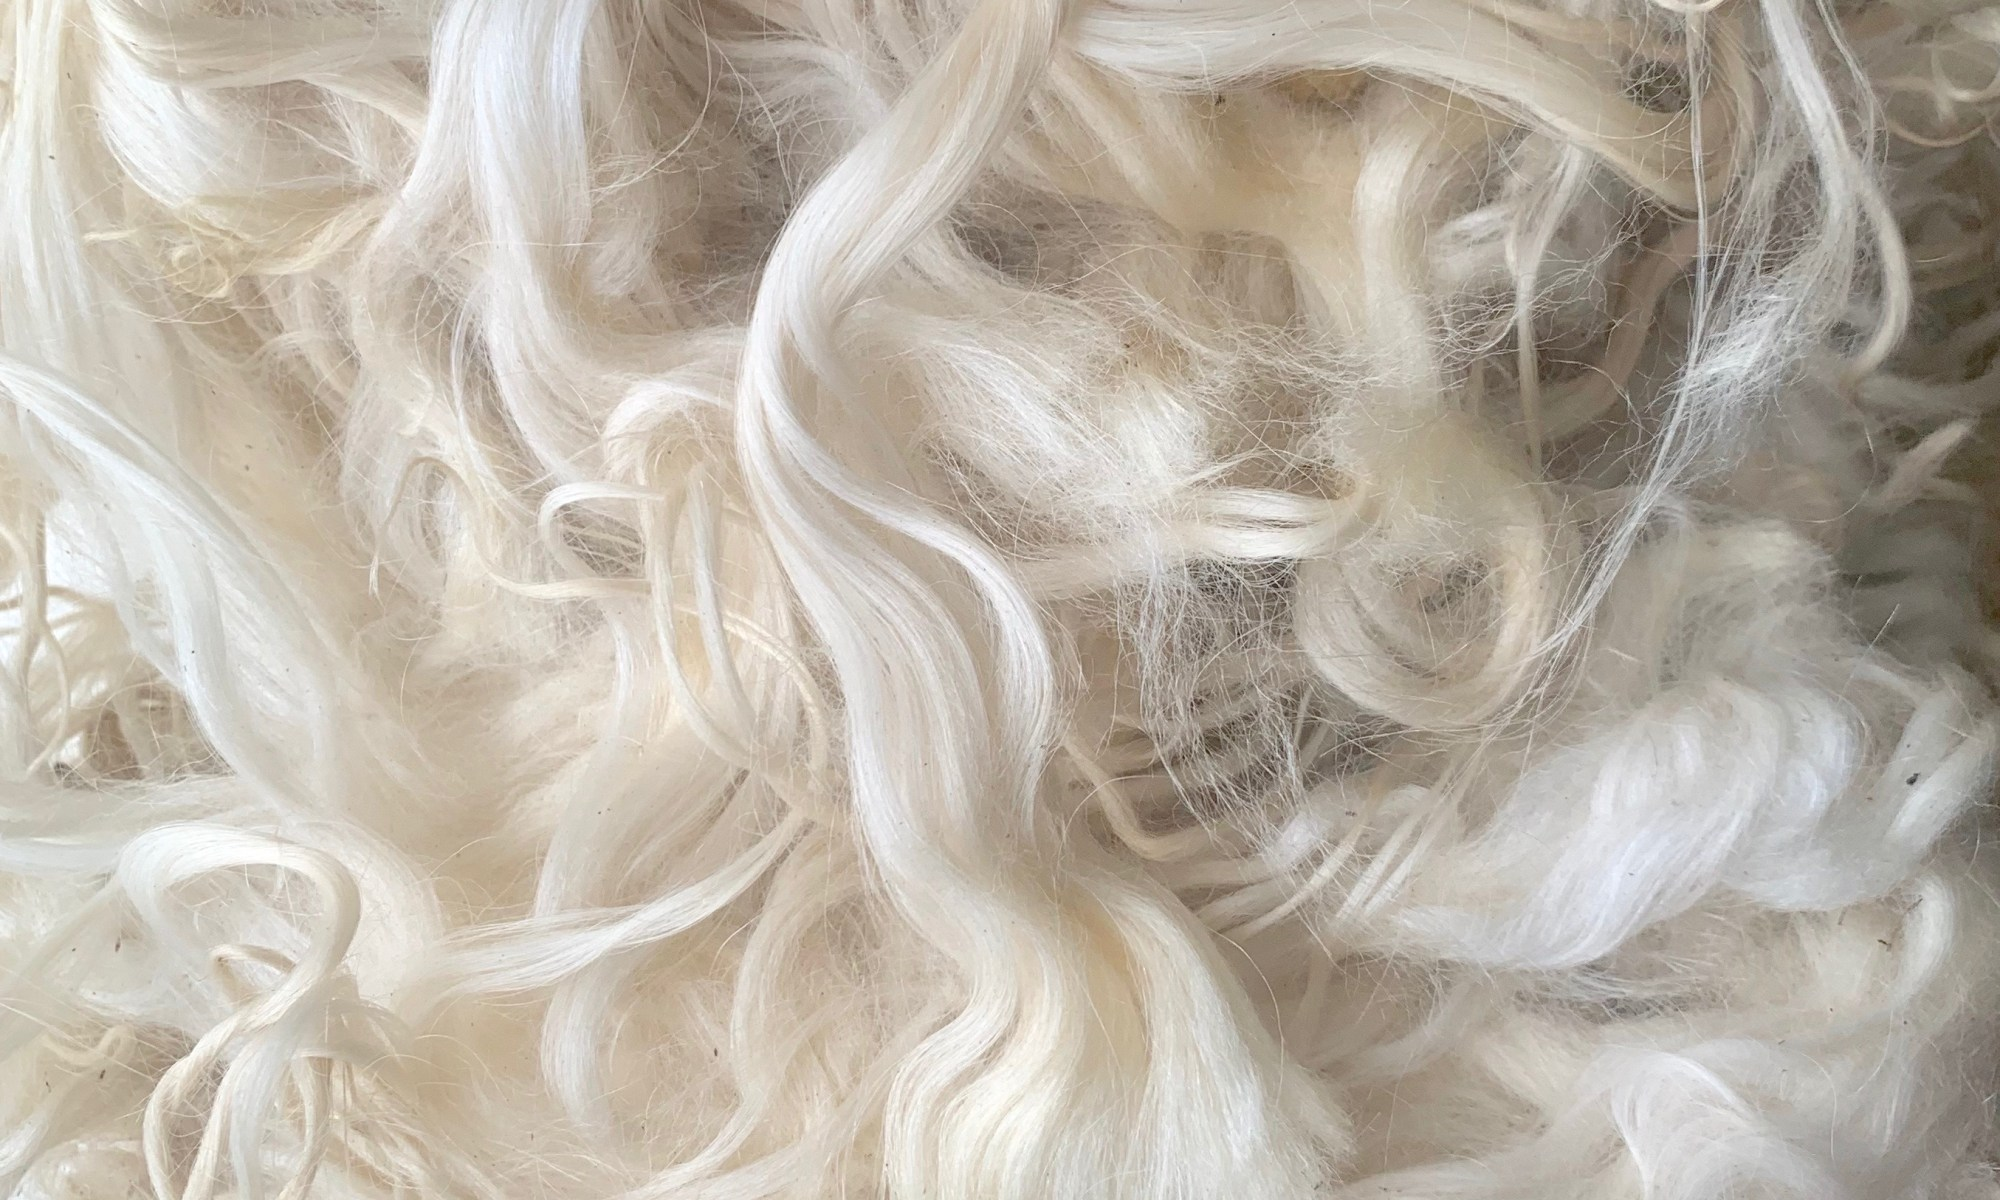 A fleece with long and shiny locks with almost no crimp